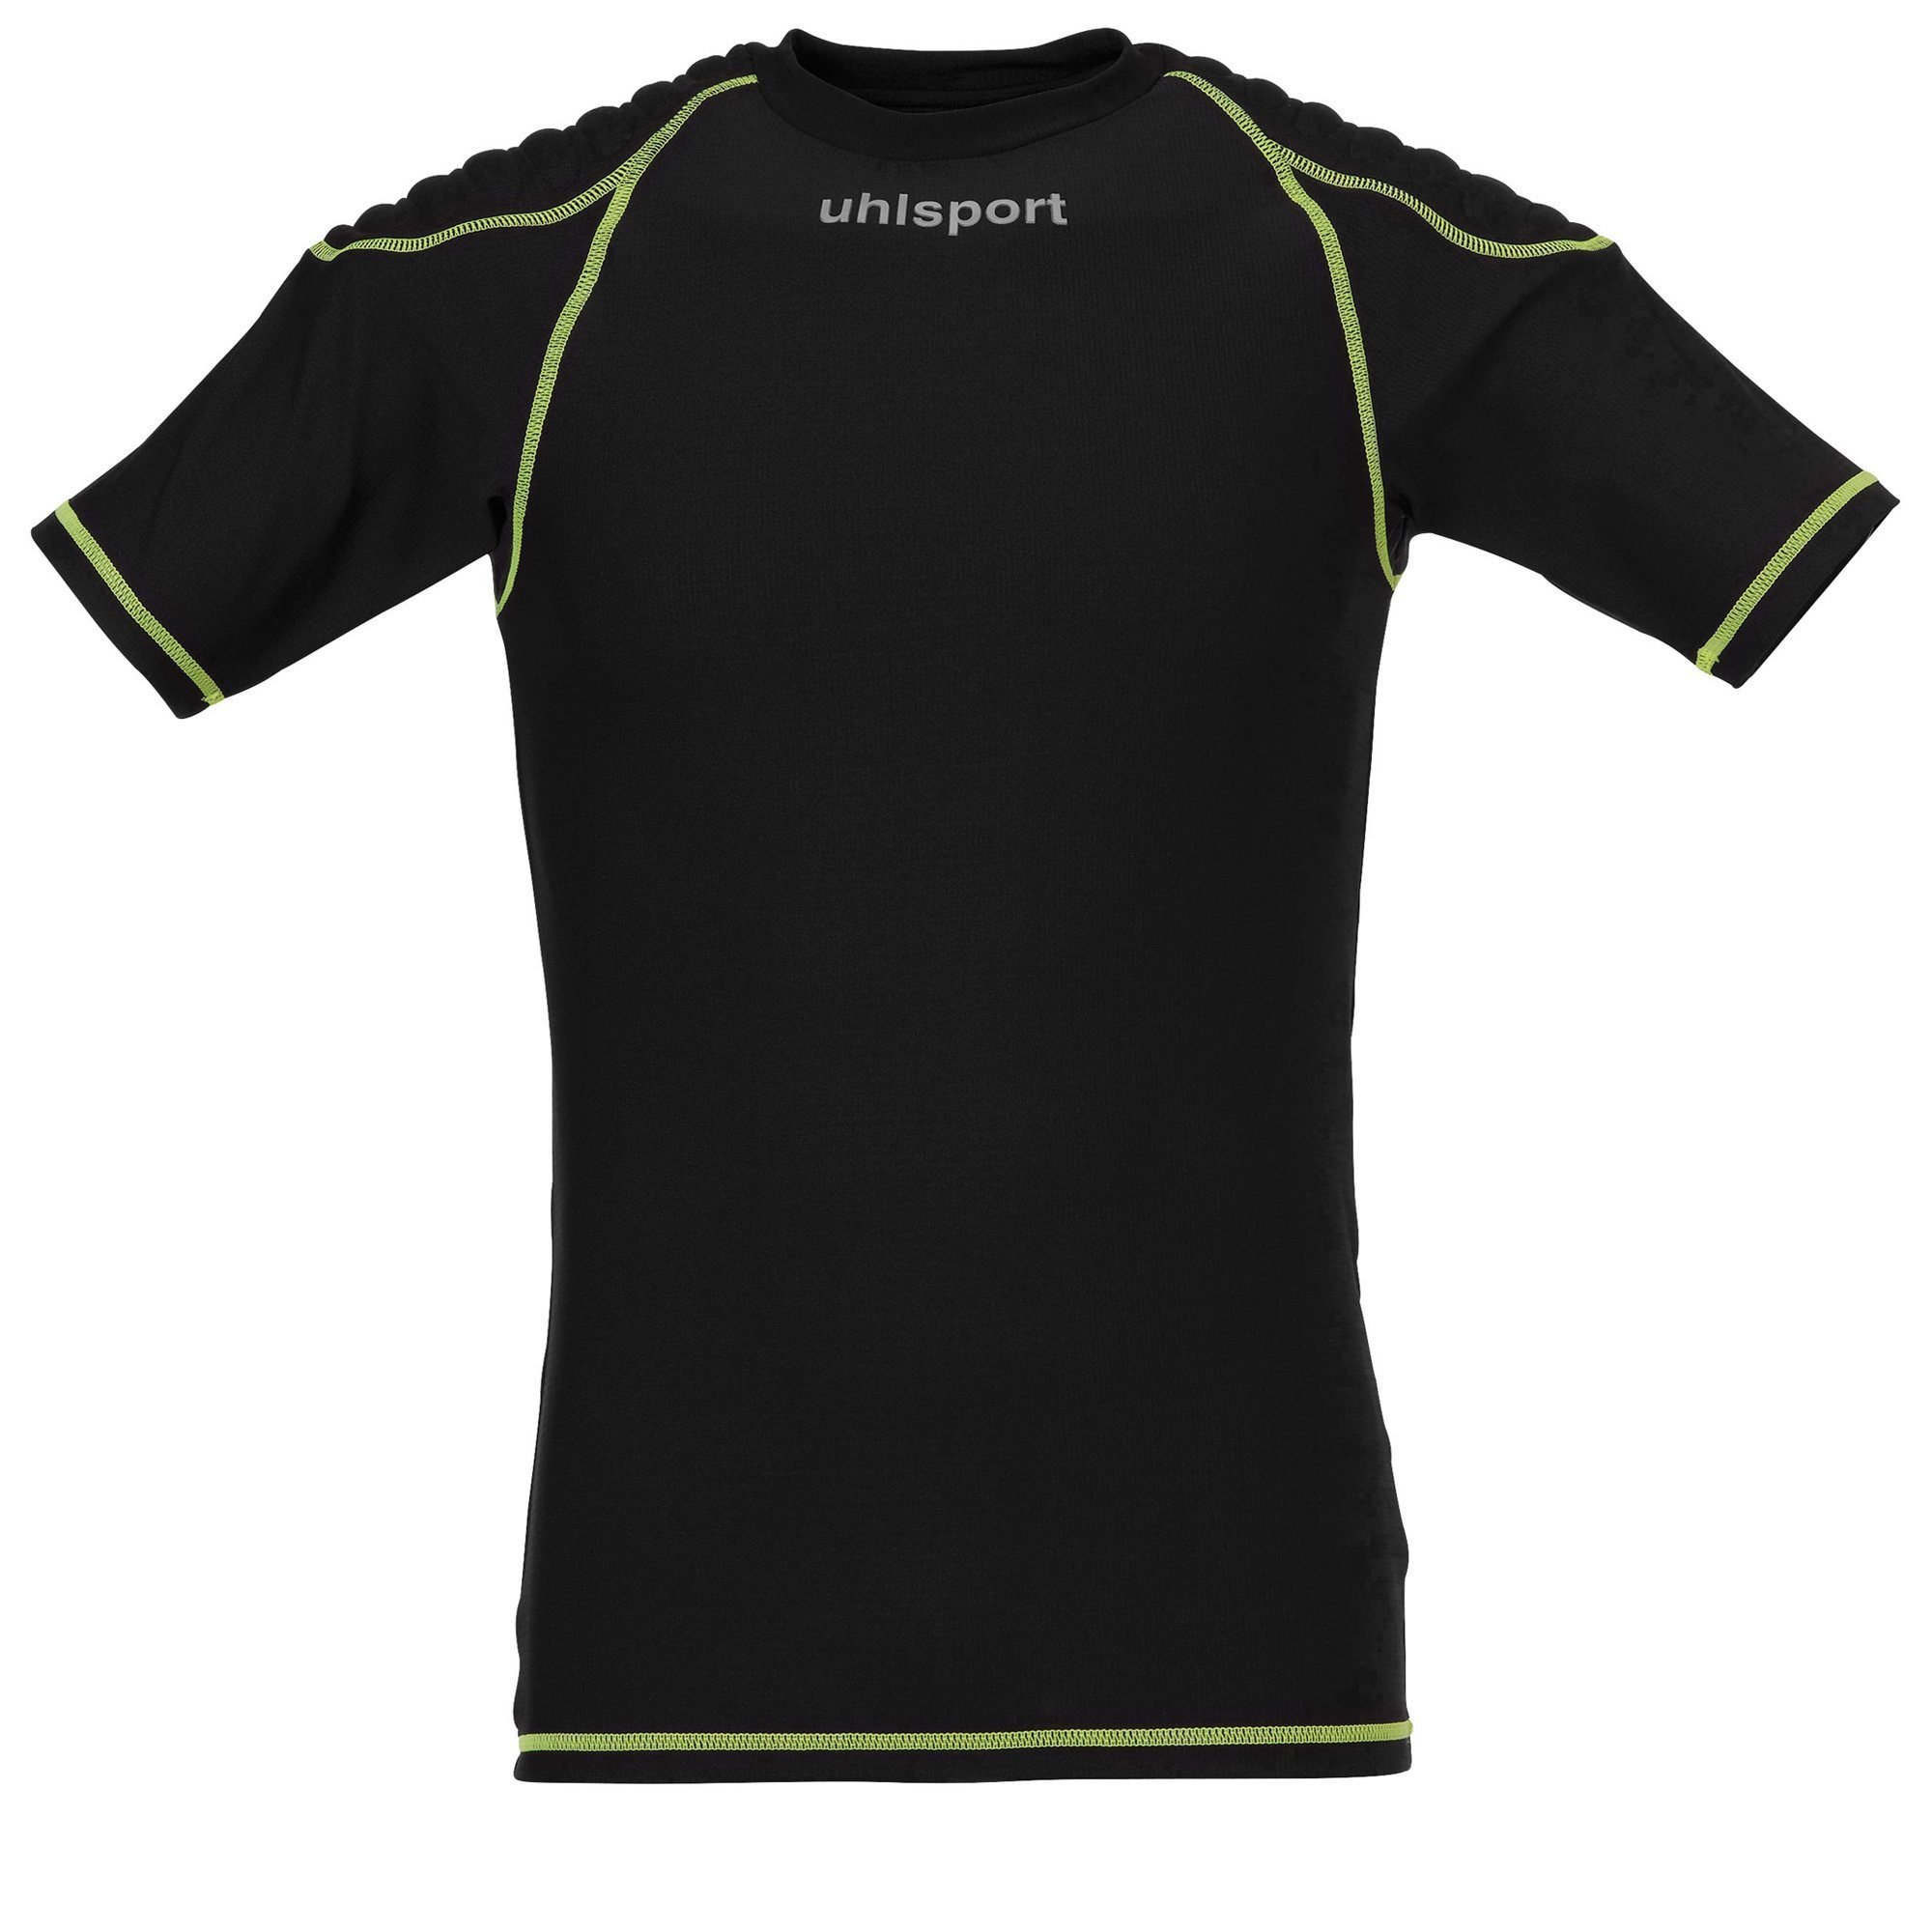 Uhlsport TorwartTECH Protektion Baselayer kurzarm Herren